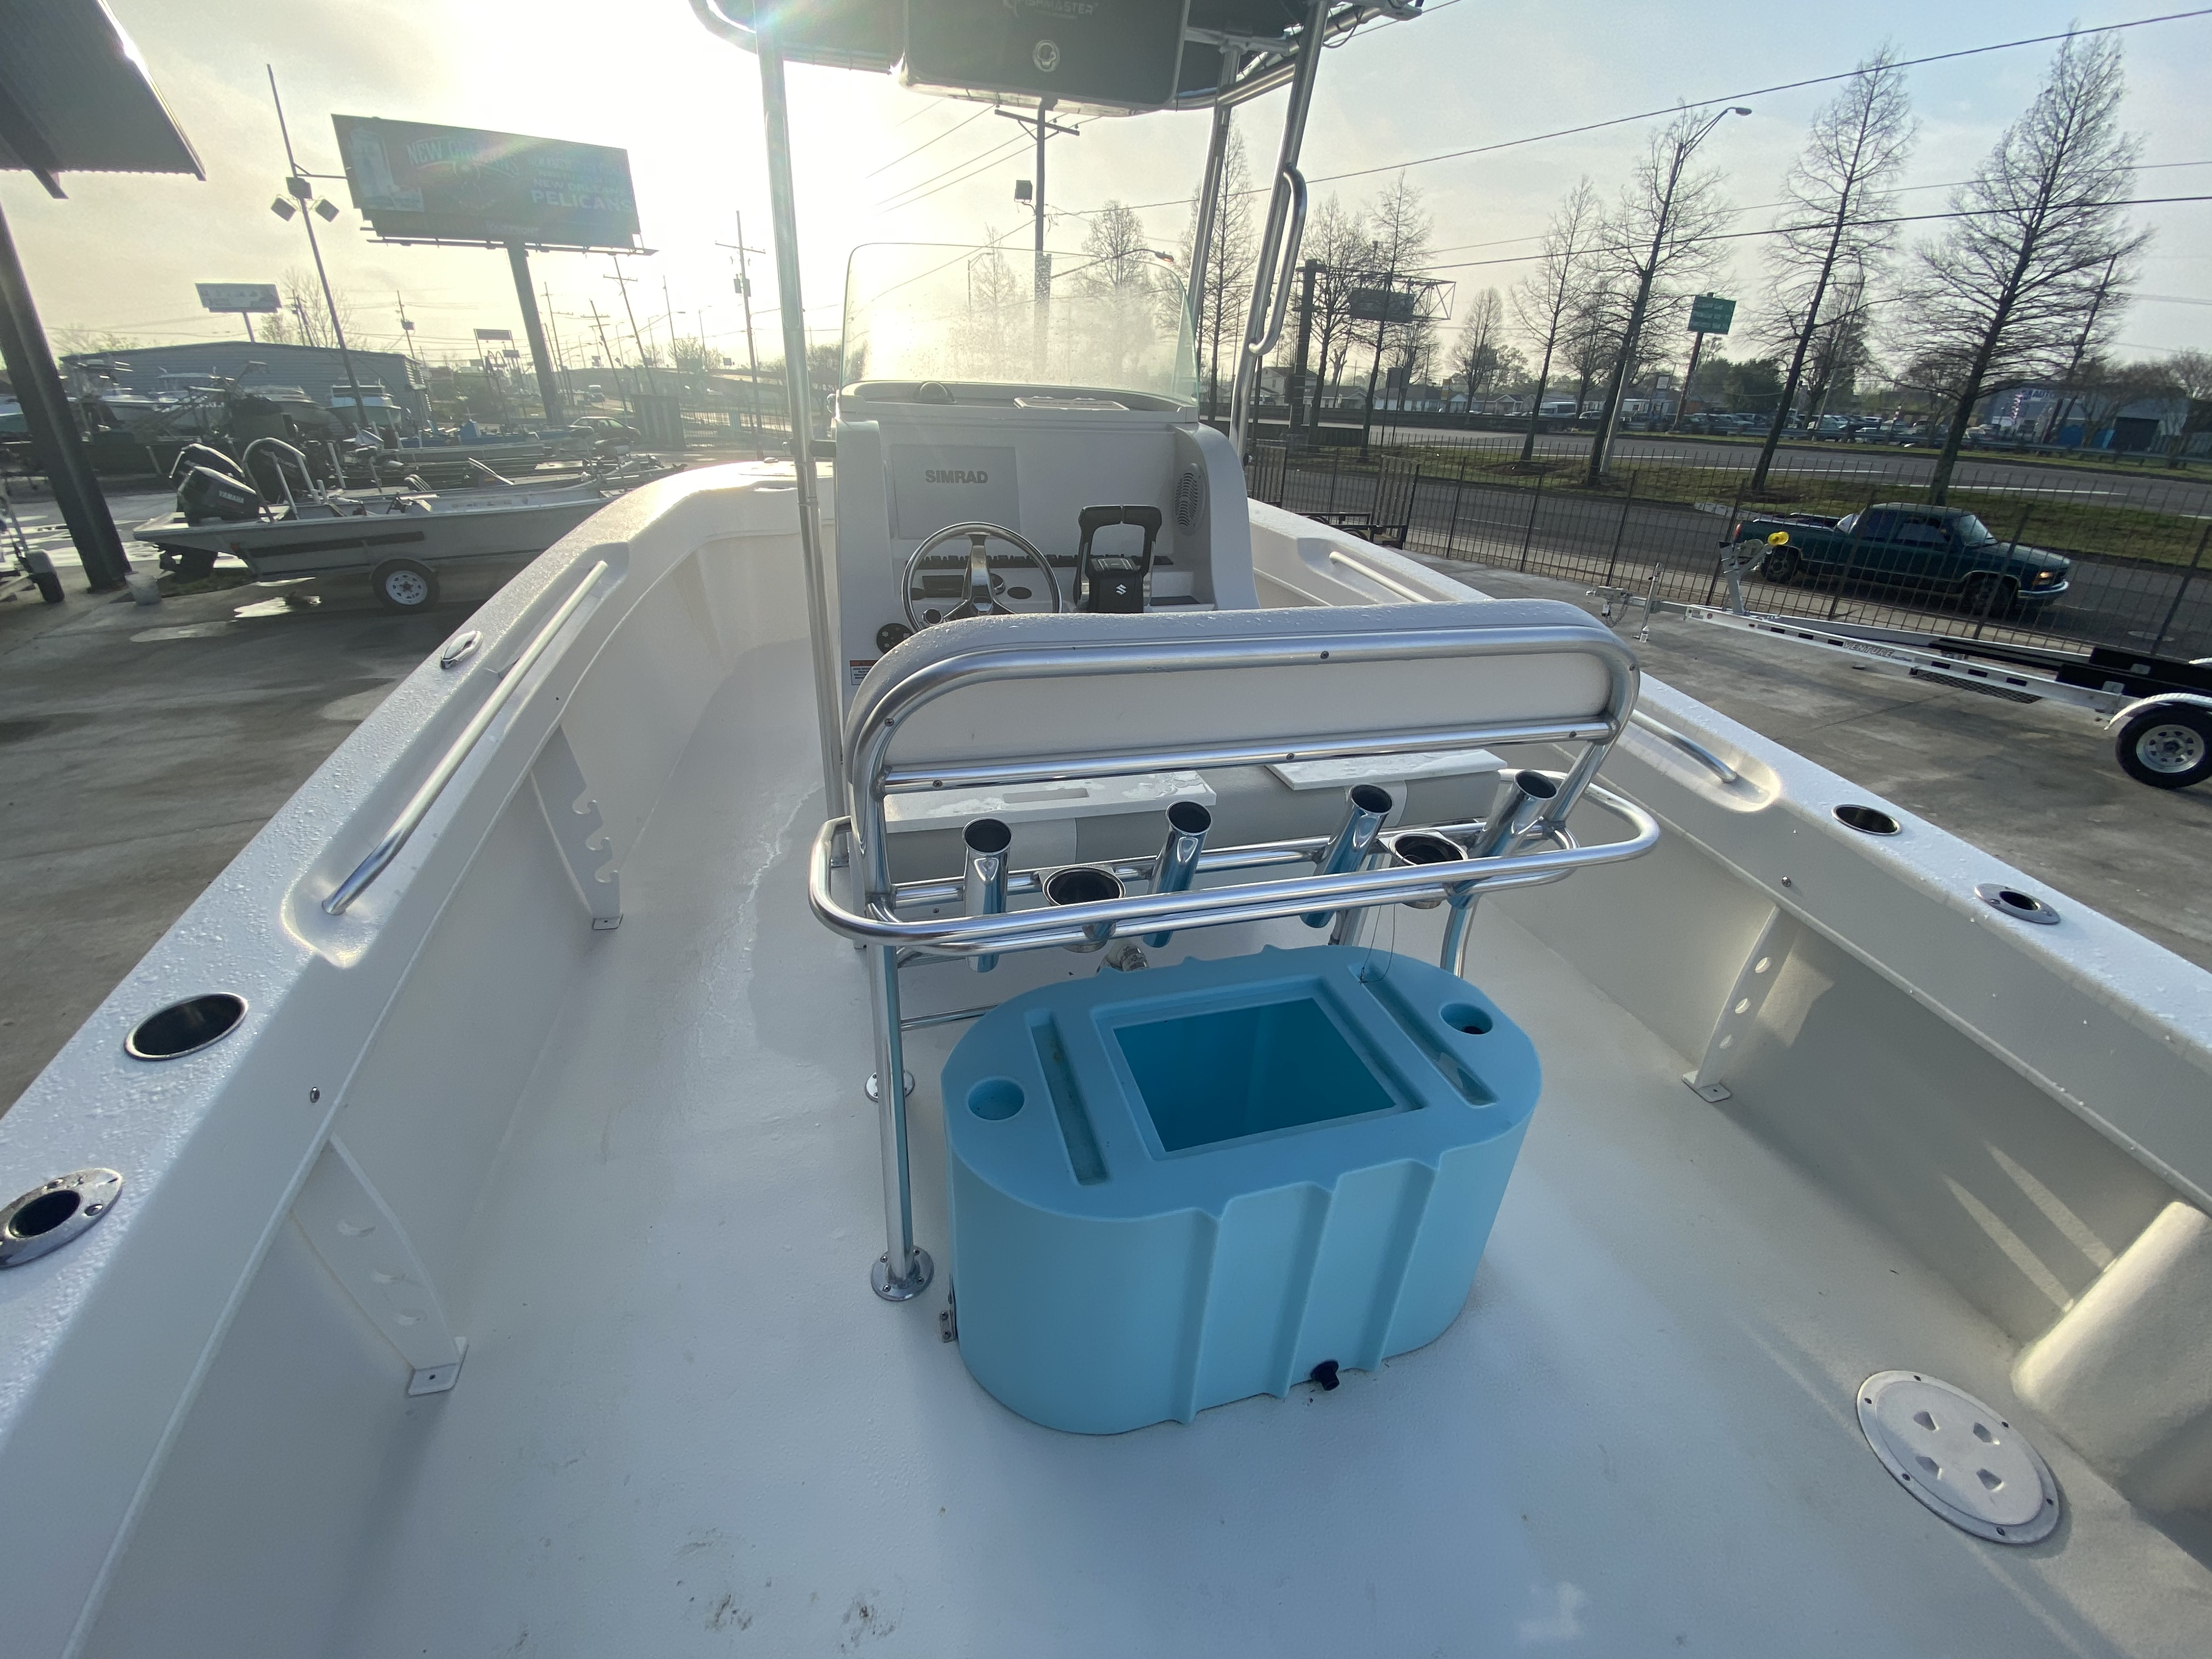 2020 Twin Vee boat for sale, model of the boat is 26 Pro & Image # 20 of 24